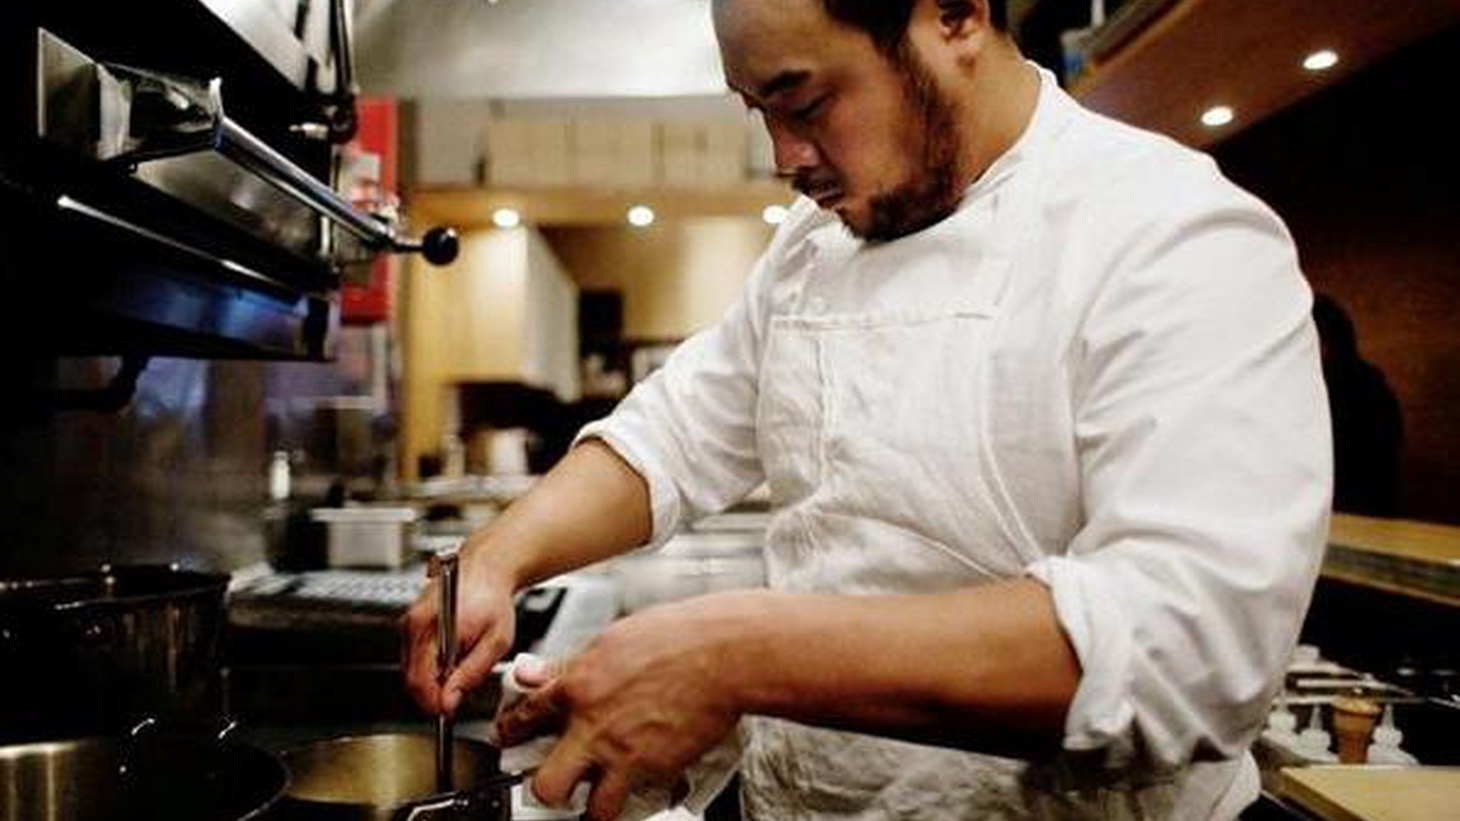 Chef David Chang is behind the acclaimed Momofuku group in New York. In his Guest DJ set, he reveals that he almost picked up a guitar instead of following his culinary dreams.